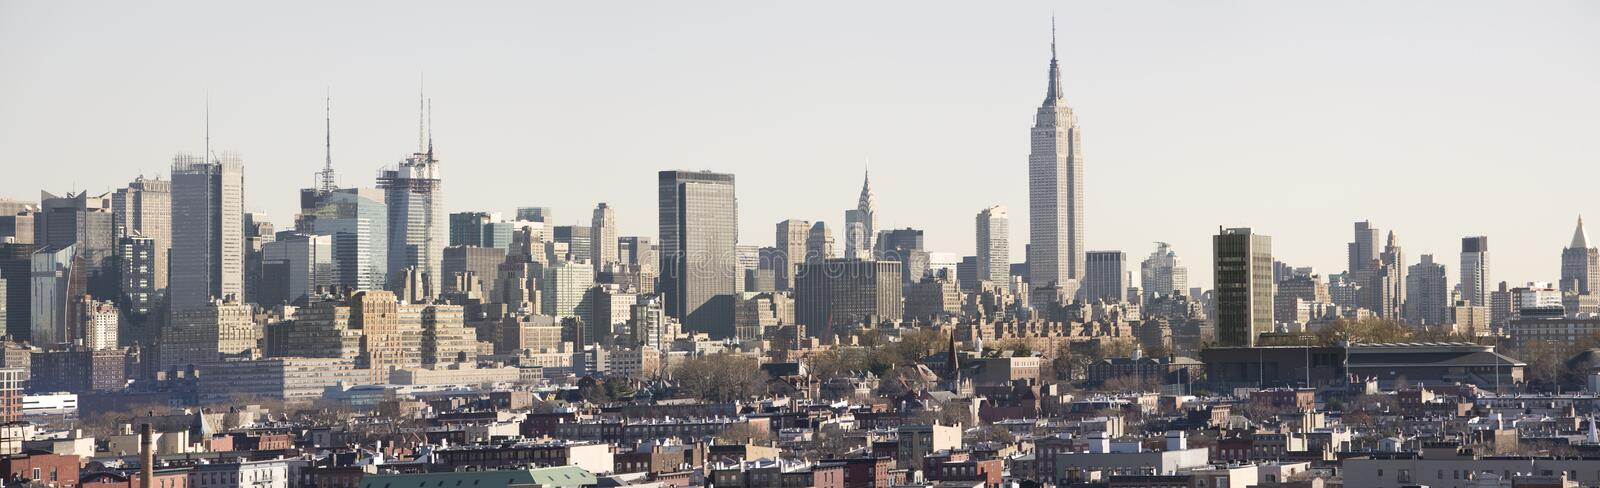 Panorama do dia de Manhattan fotos de stock royalty free